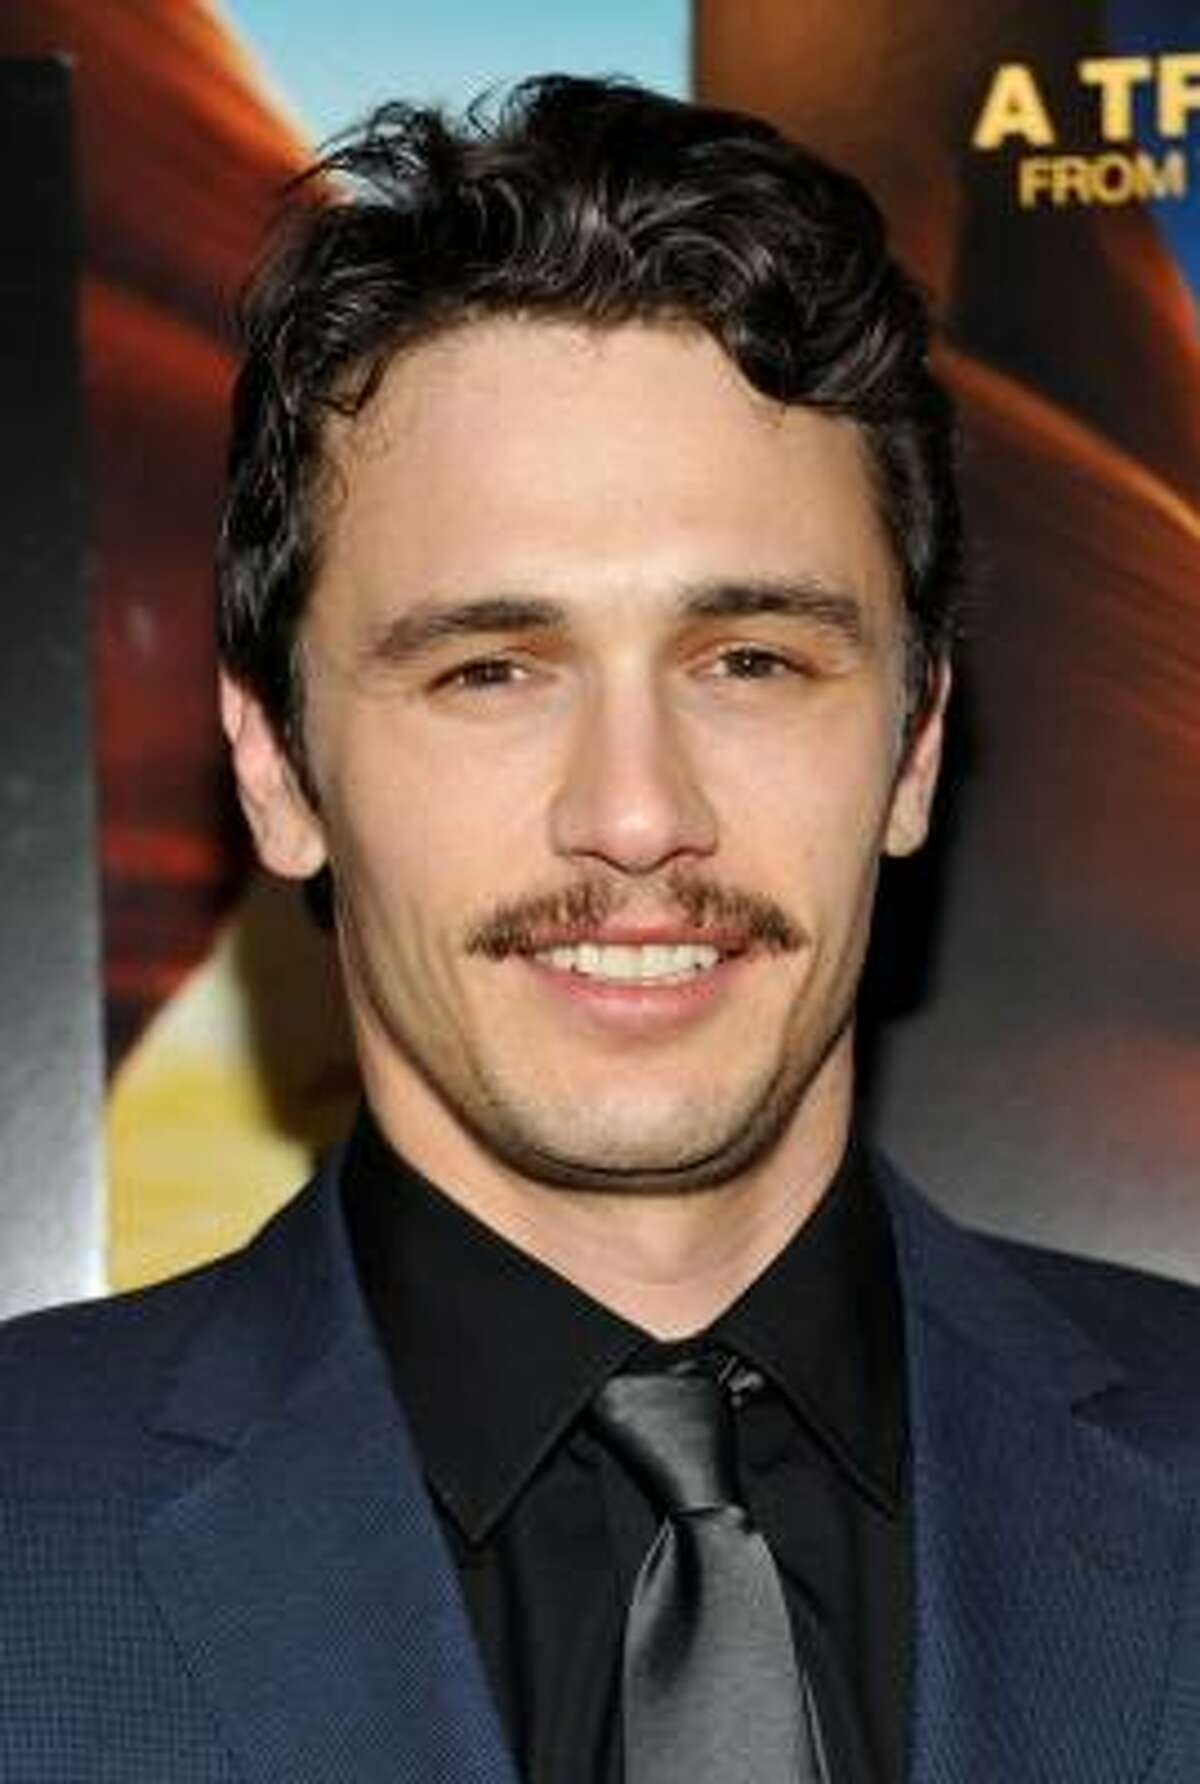 """In this Nov. 2, 2010, file photo, actor James Franco attends the """"127 Hours"""" film premiere at Chelsea Clearview Cinema in New York."""